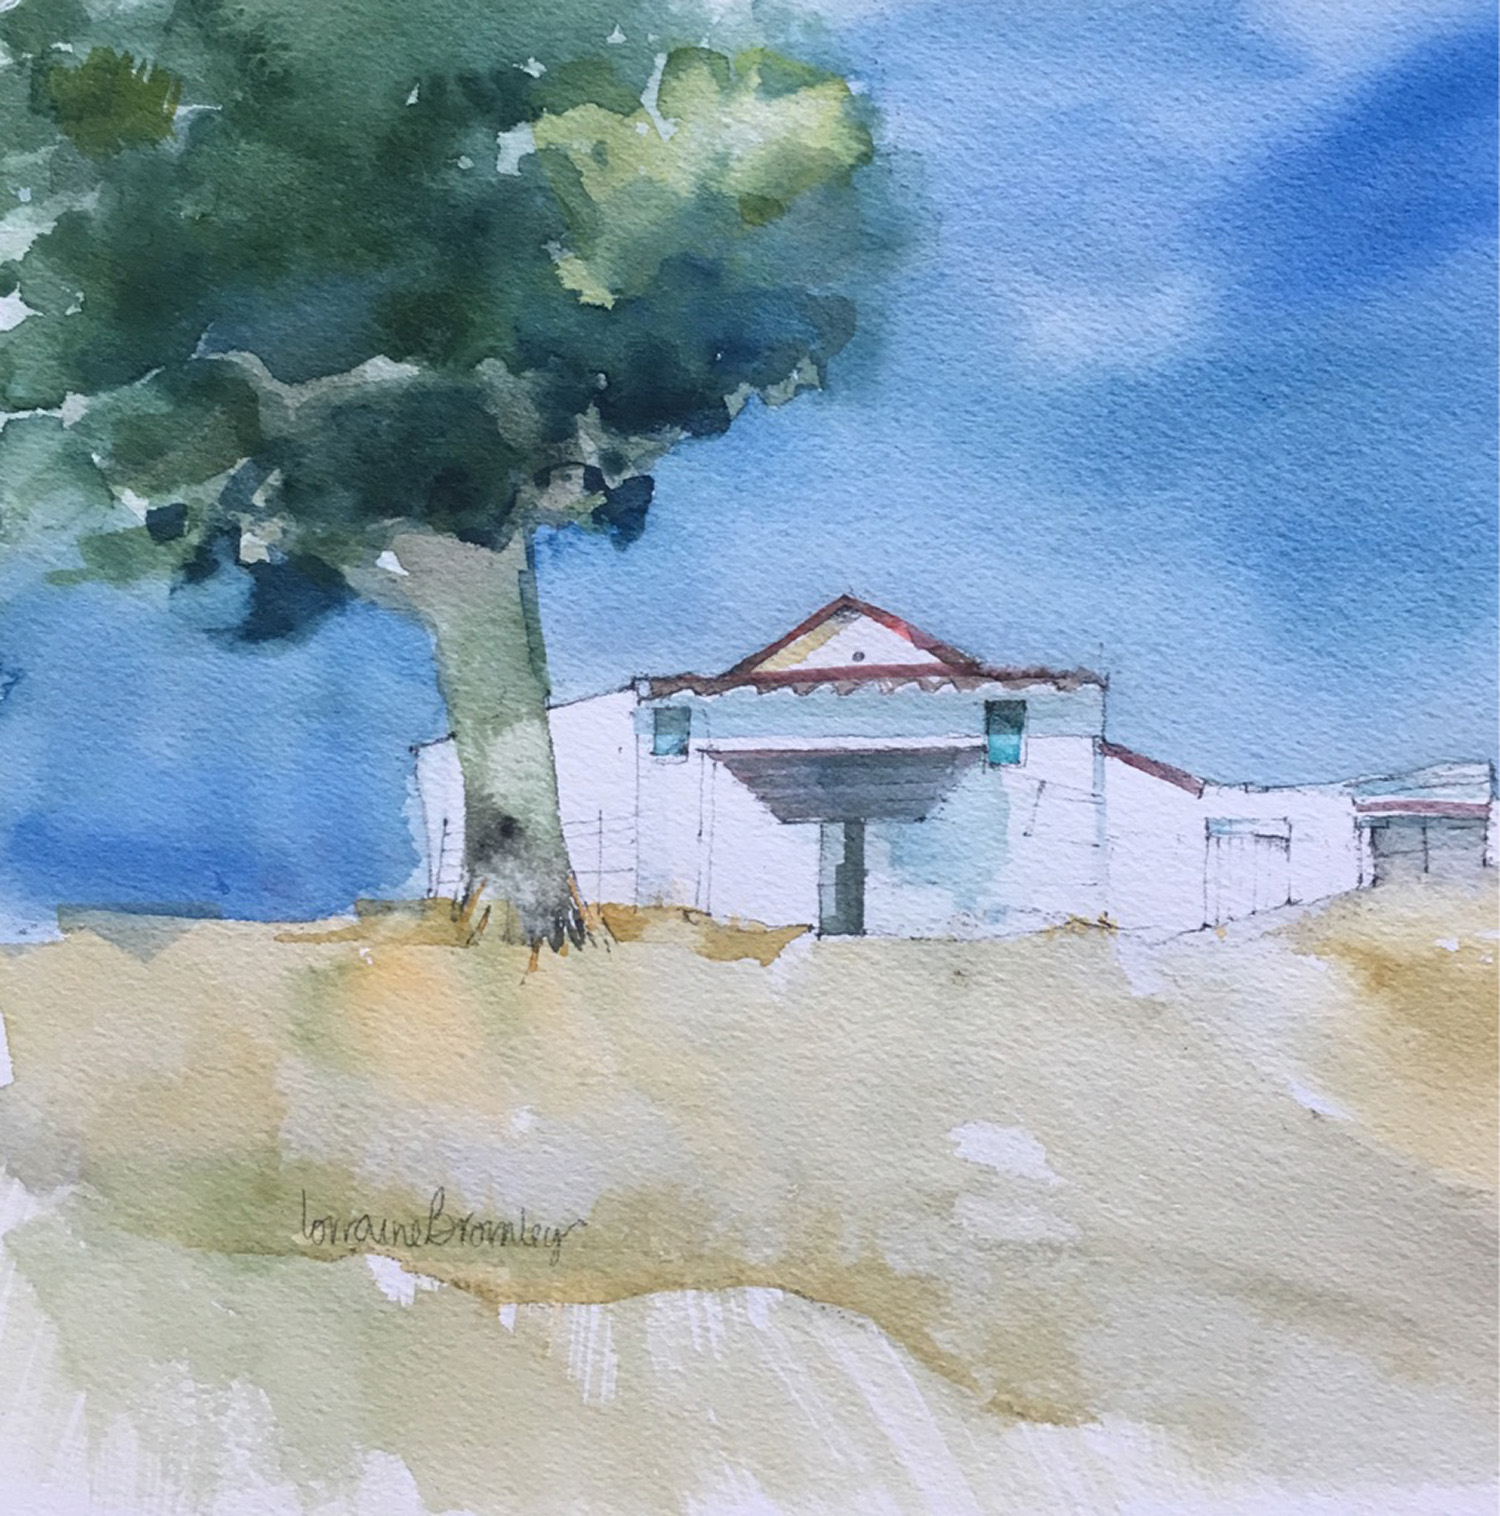 Lorraine Bromley, Andalucia